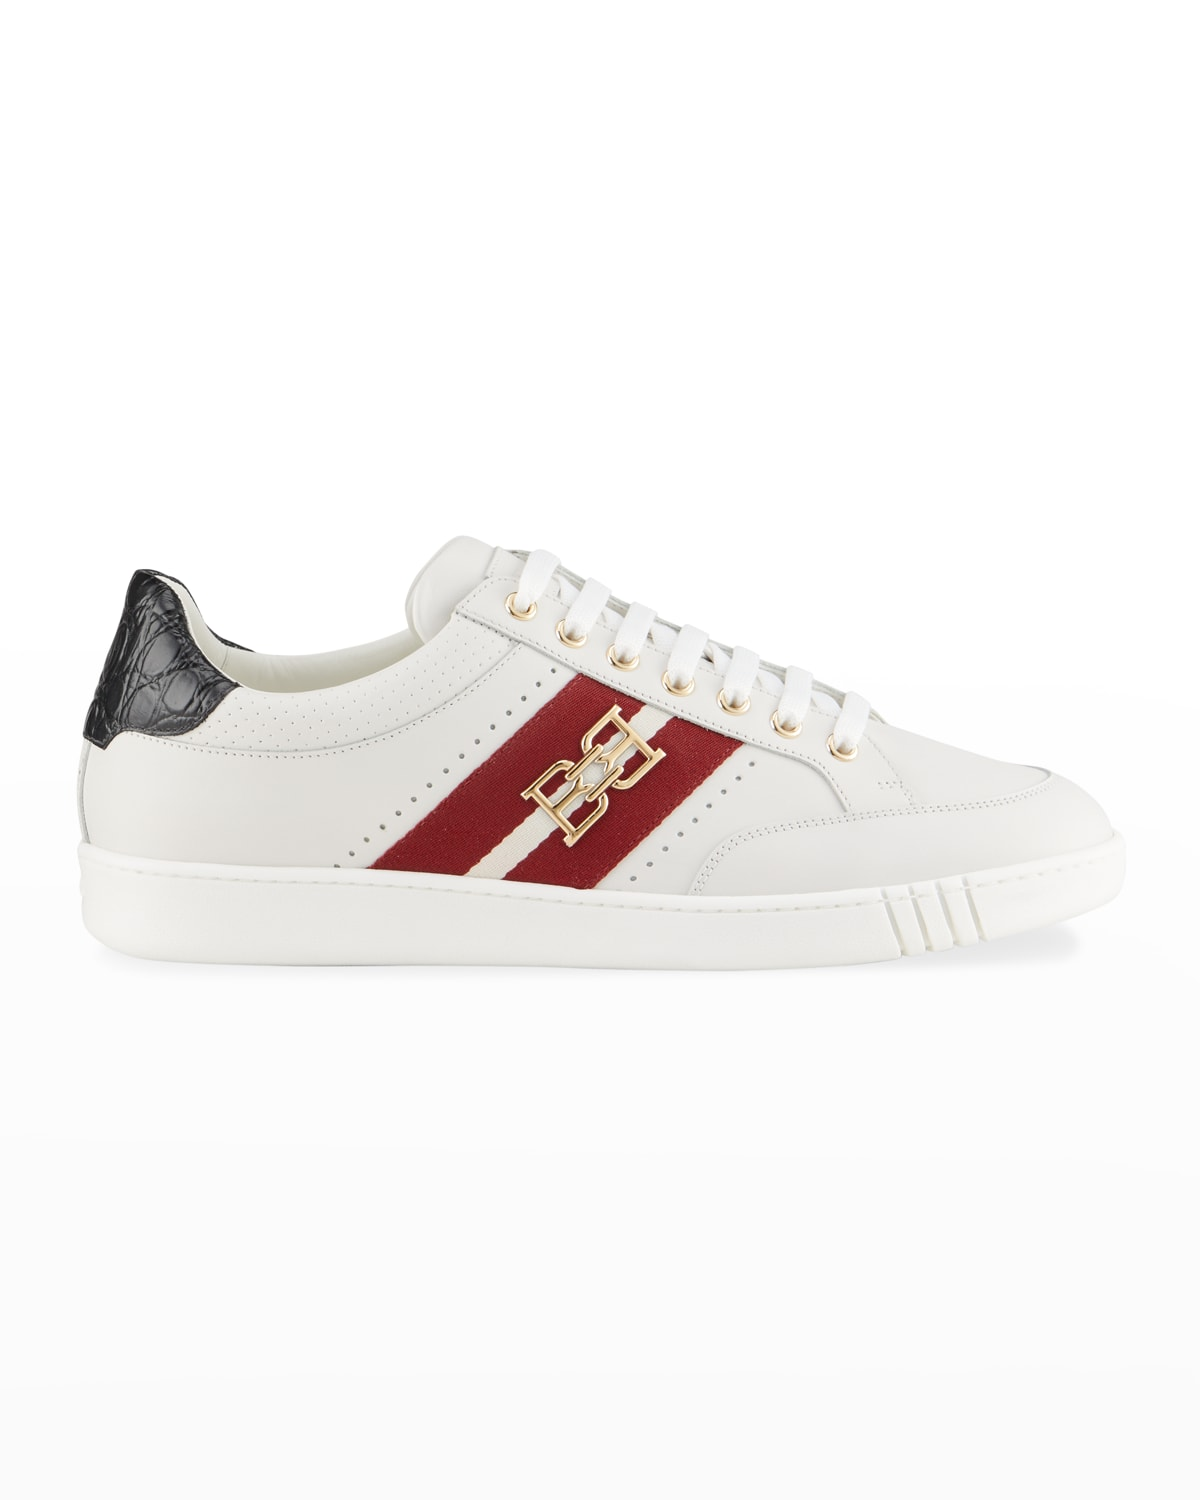 Men's Winton 07 Trainspotting Leather Low-Top Sneakers